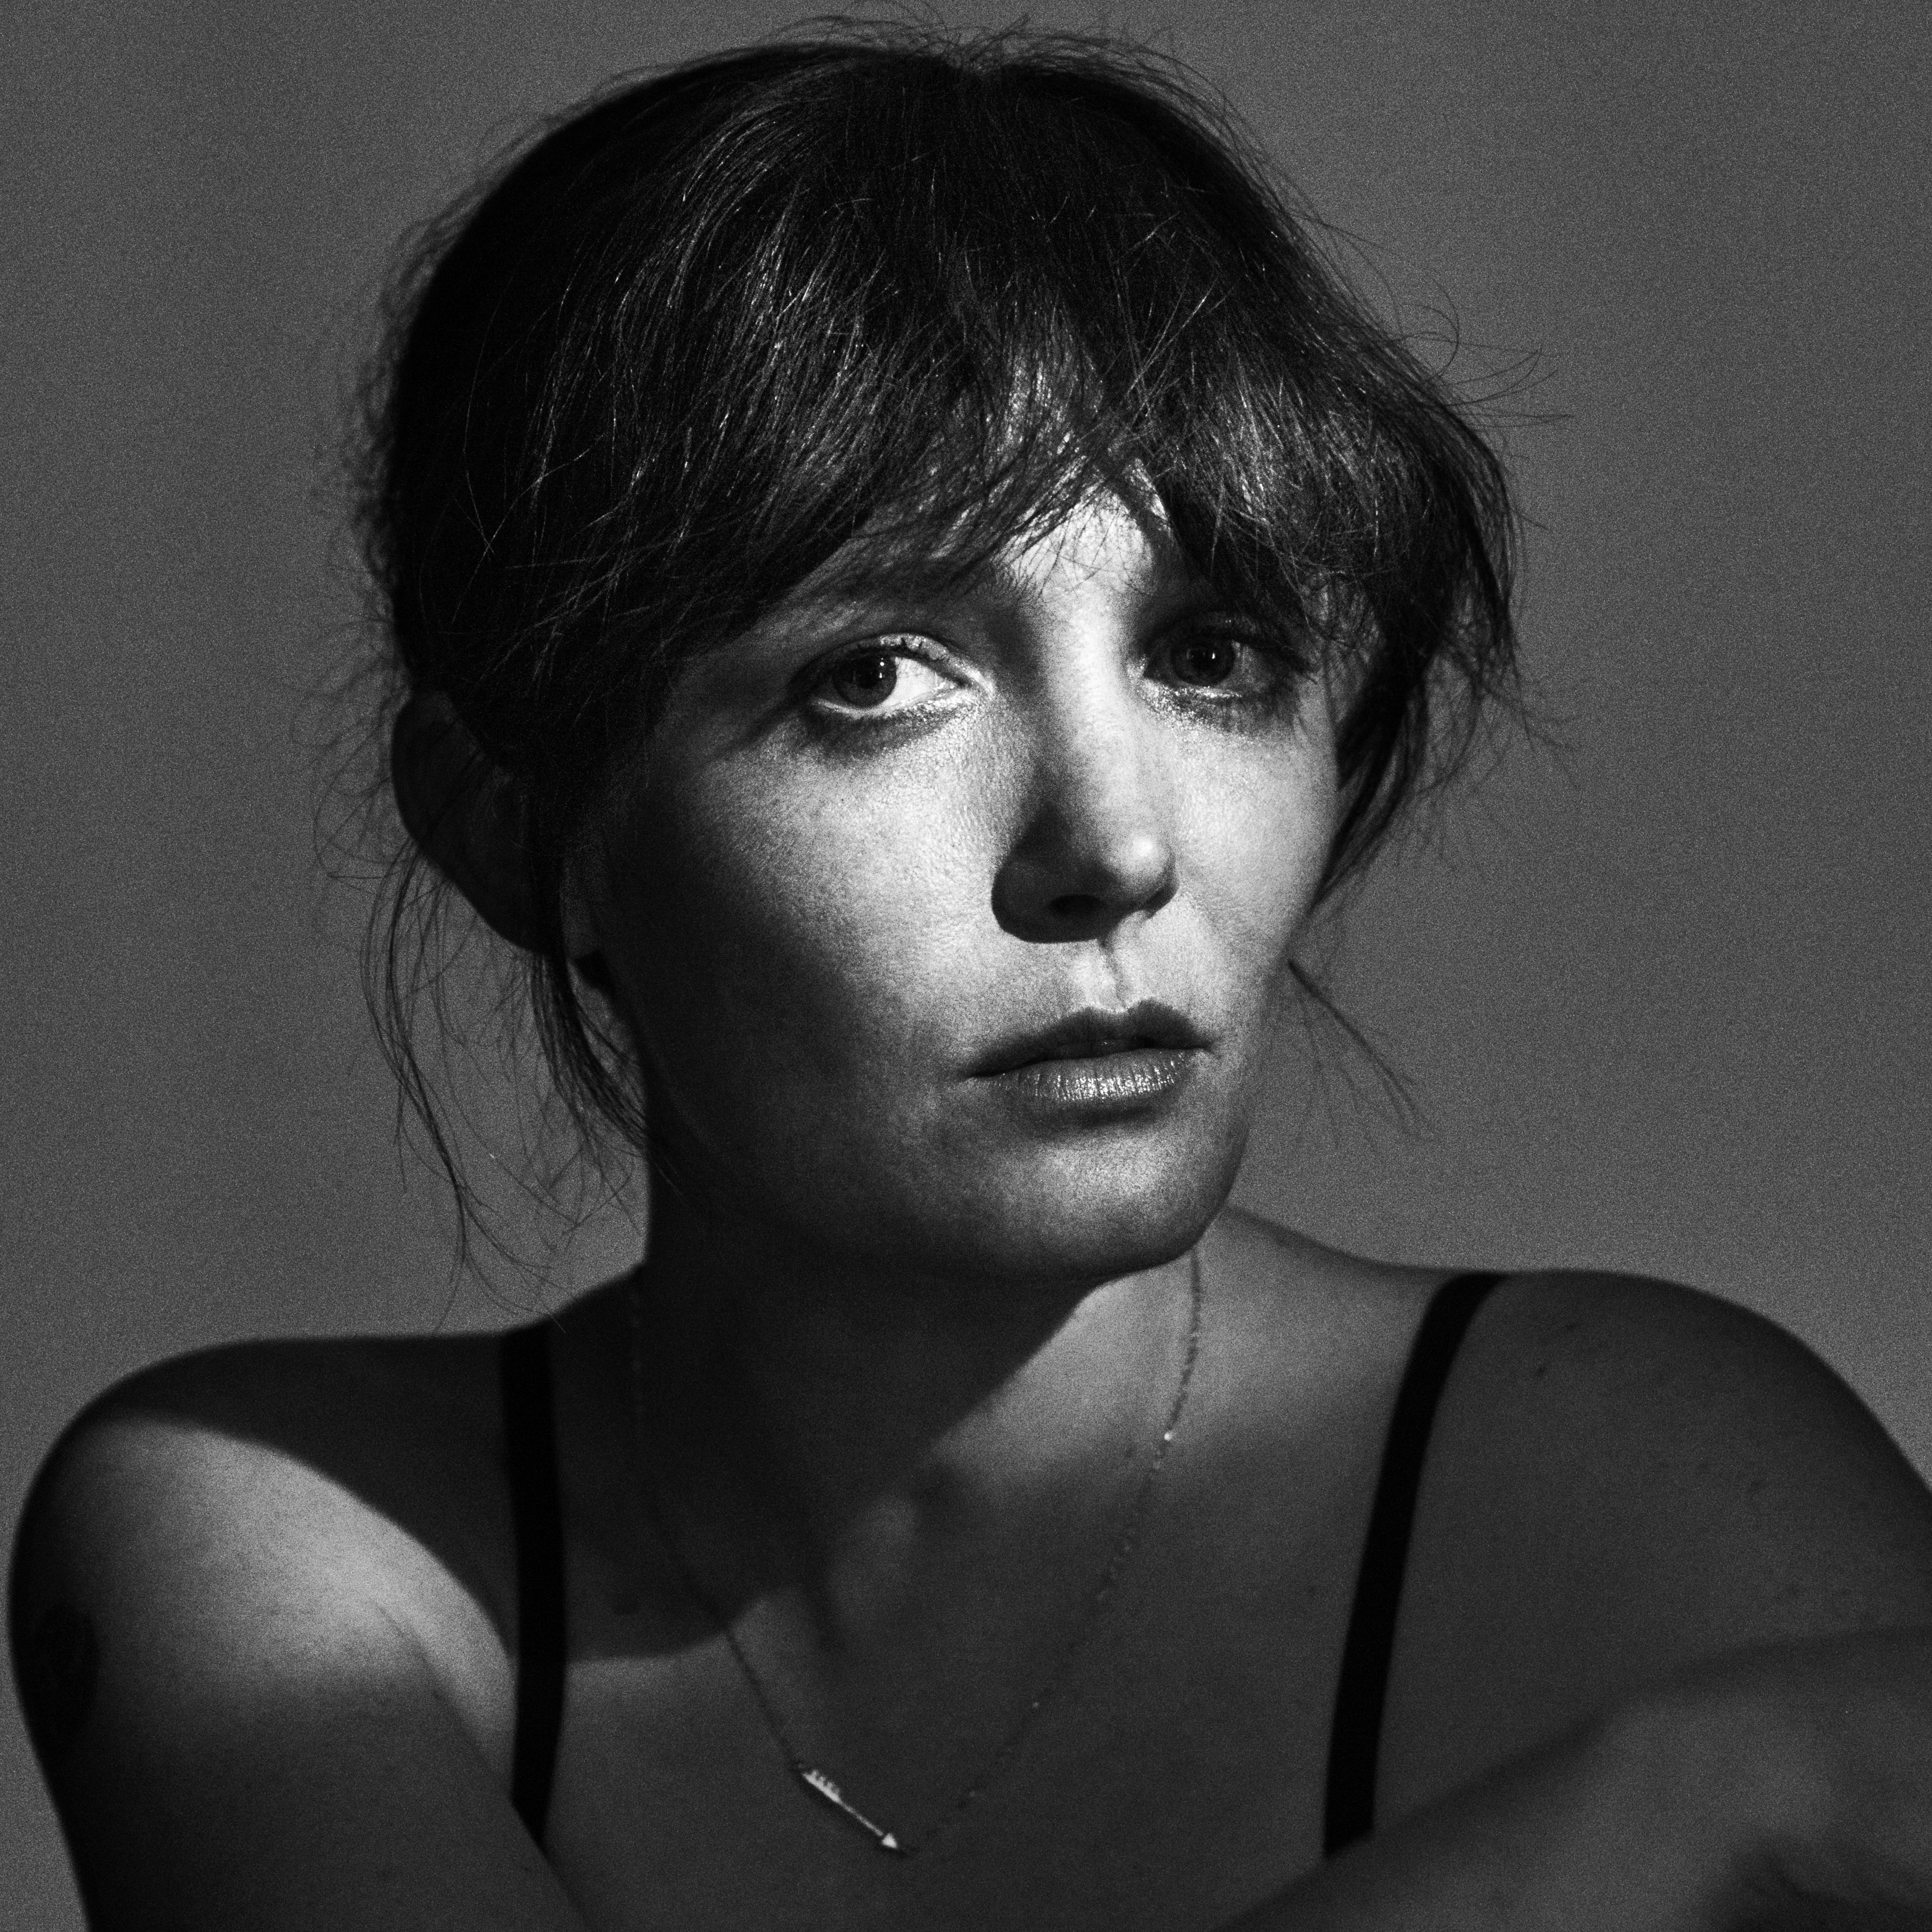 new-sarah-blasko-bw-square-hi-res-credit-kylie-coutts